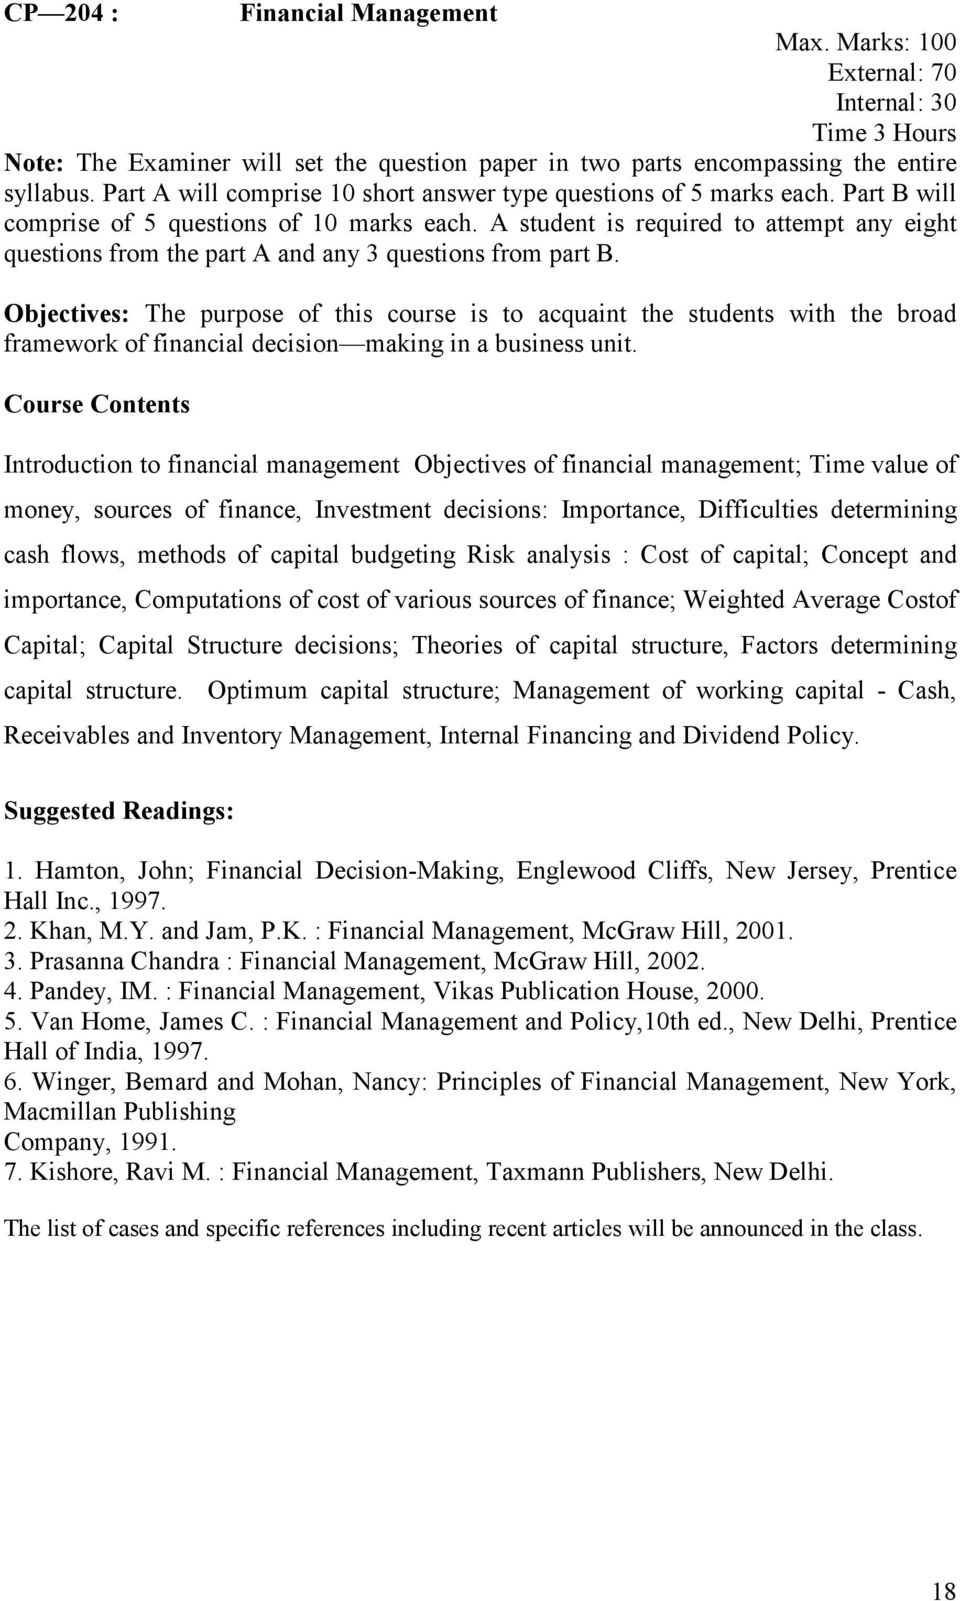 flows, methods of capital budgeting Risk analysis : Cost of capital; Concept and importance, Computations of cost of various sources of finance; Weighted Average Costof Capital; Capital Structure